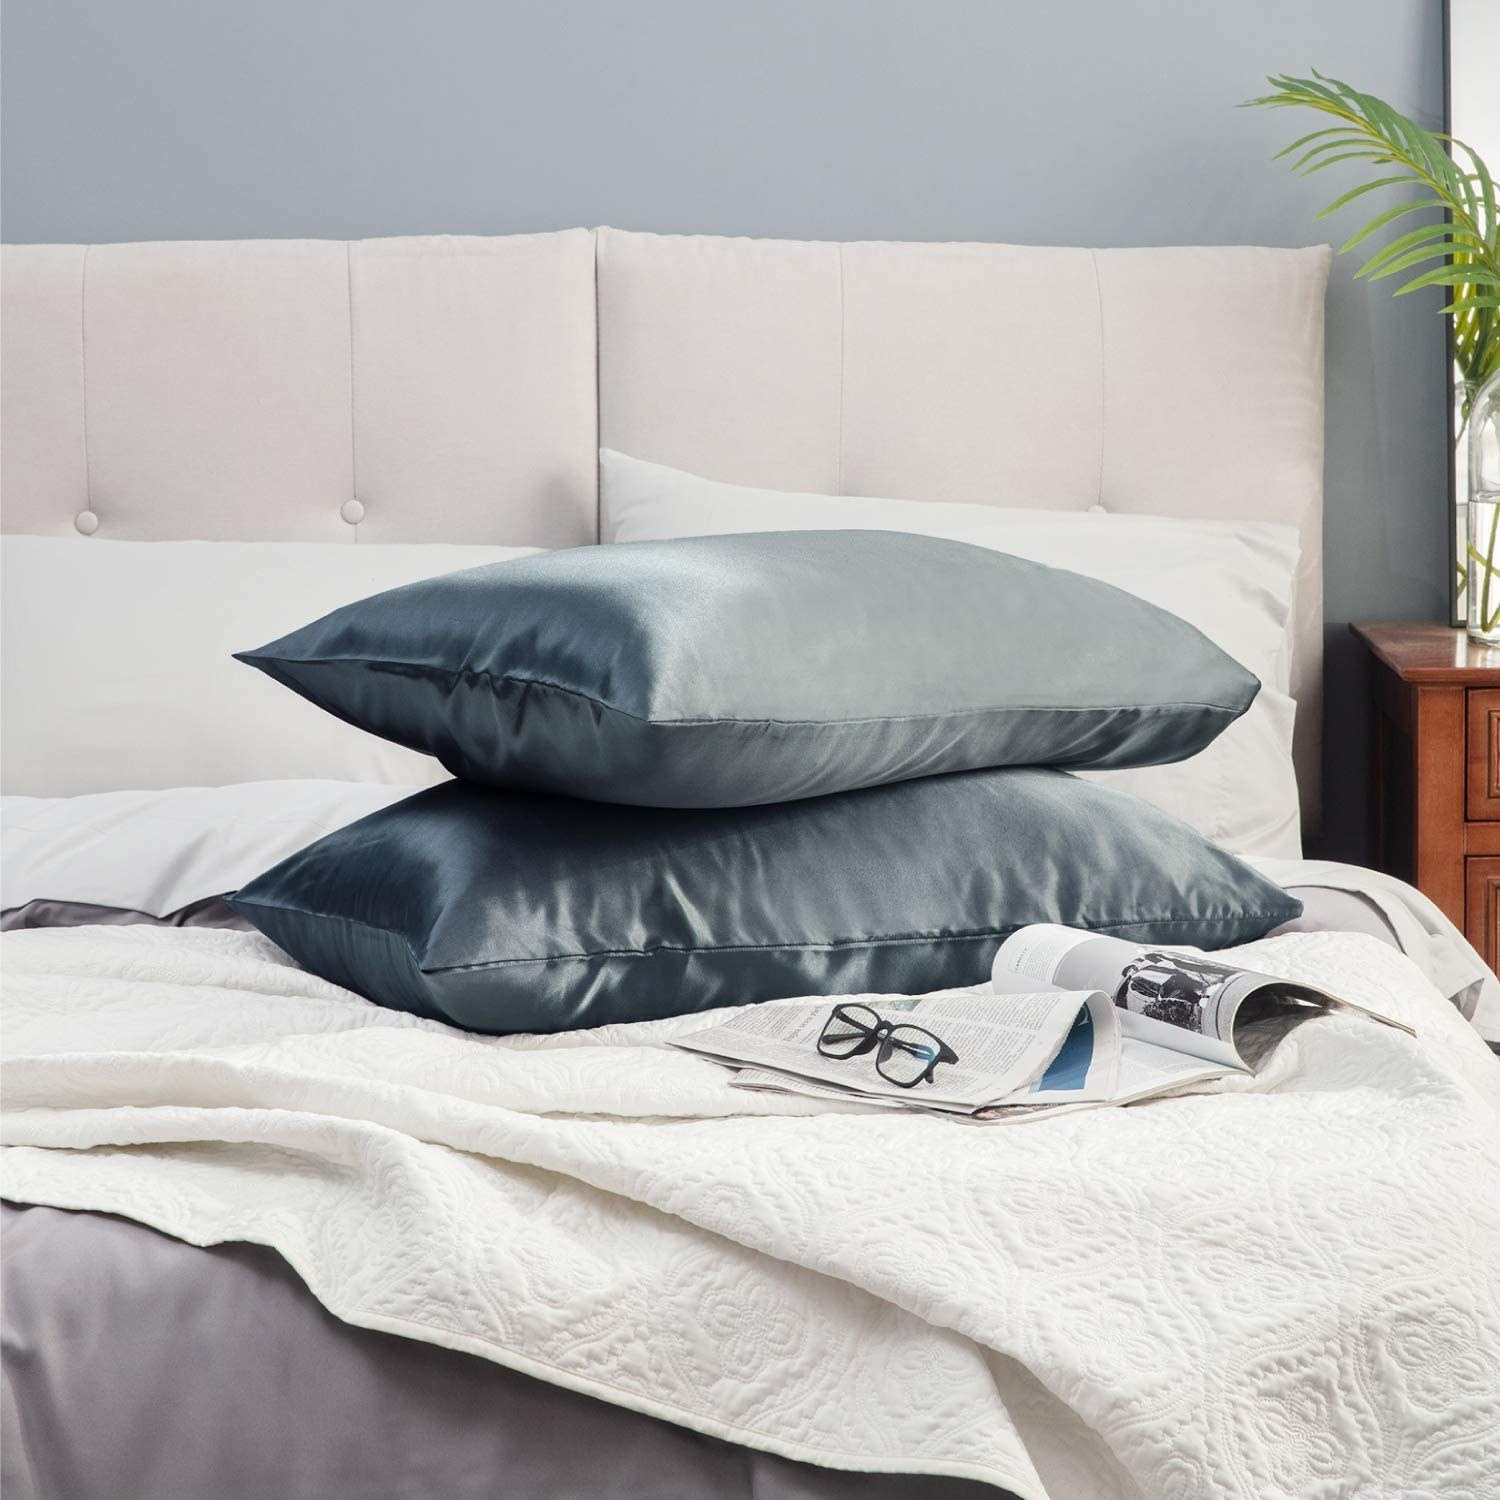 Two pillows with the satin pillowcases stacked on one another on a bed